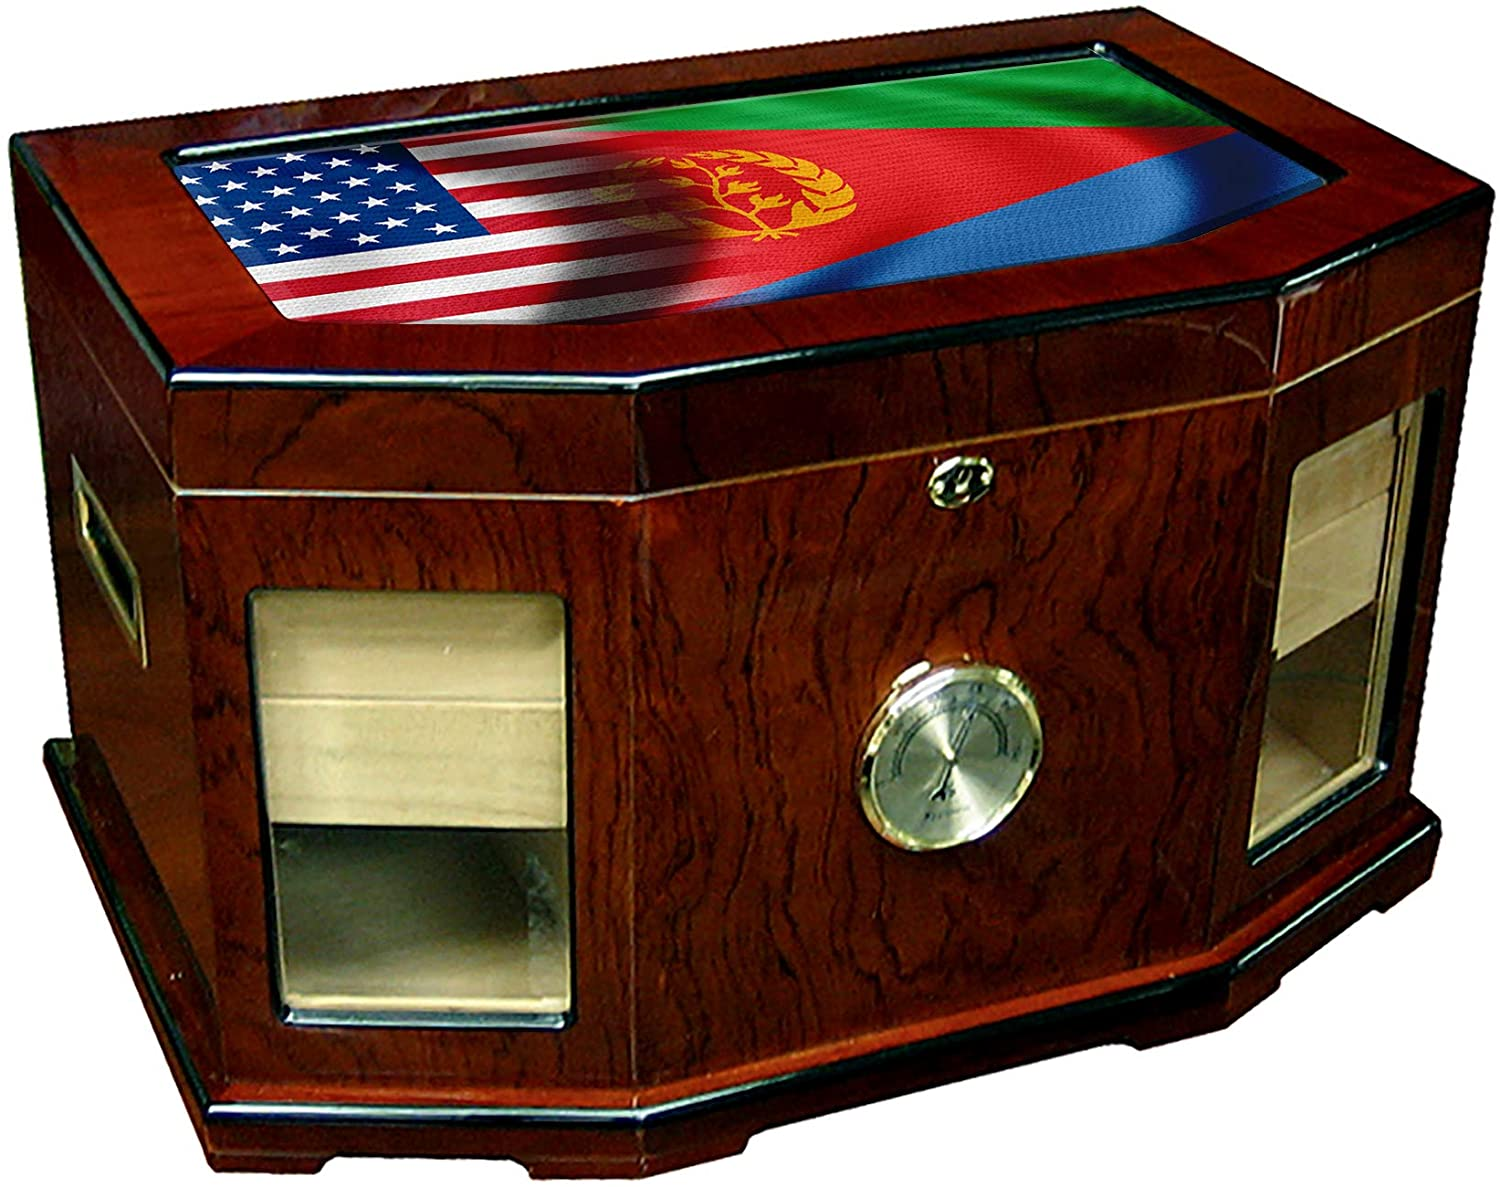 Large Premium Desktop Humidor - Glass Top - Flag of Eritrea (Eritrean) - Waves with USA Flag - 300 Cigar Capacity - Cedar Lined with Two humidifiers & Large Front Mounted Hygrometer.